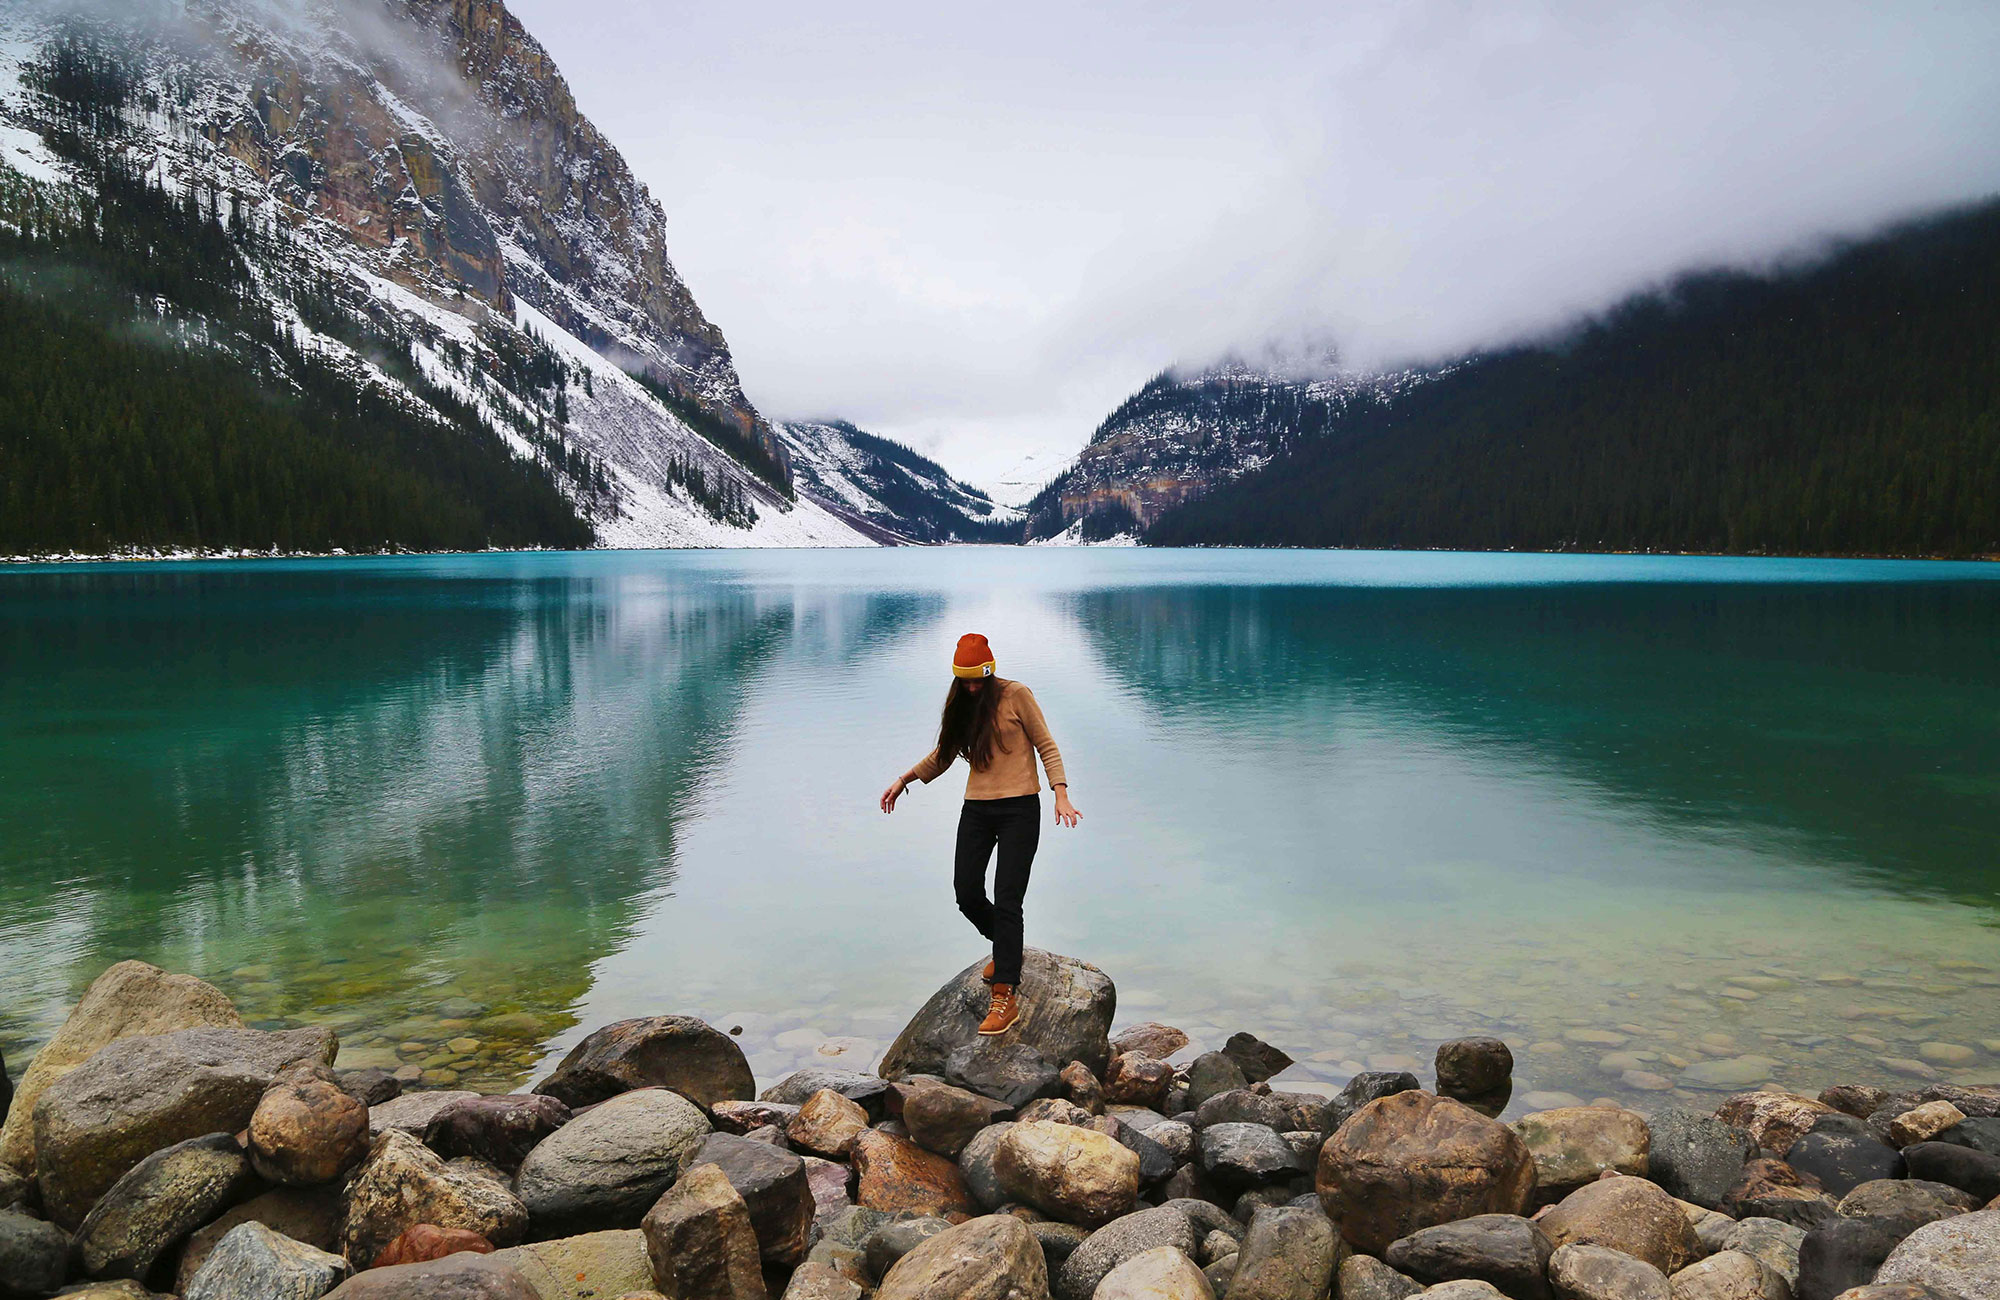 tjej vid Lake Louise, Banff National Park | KILROY